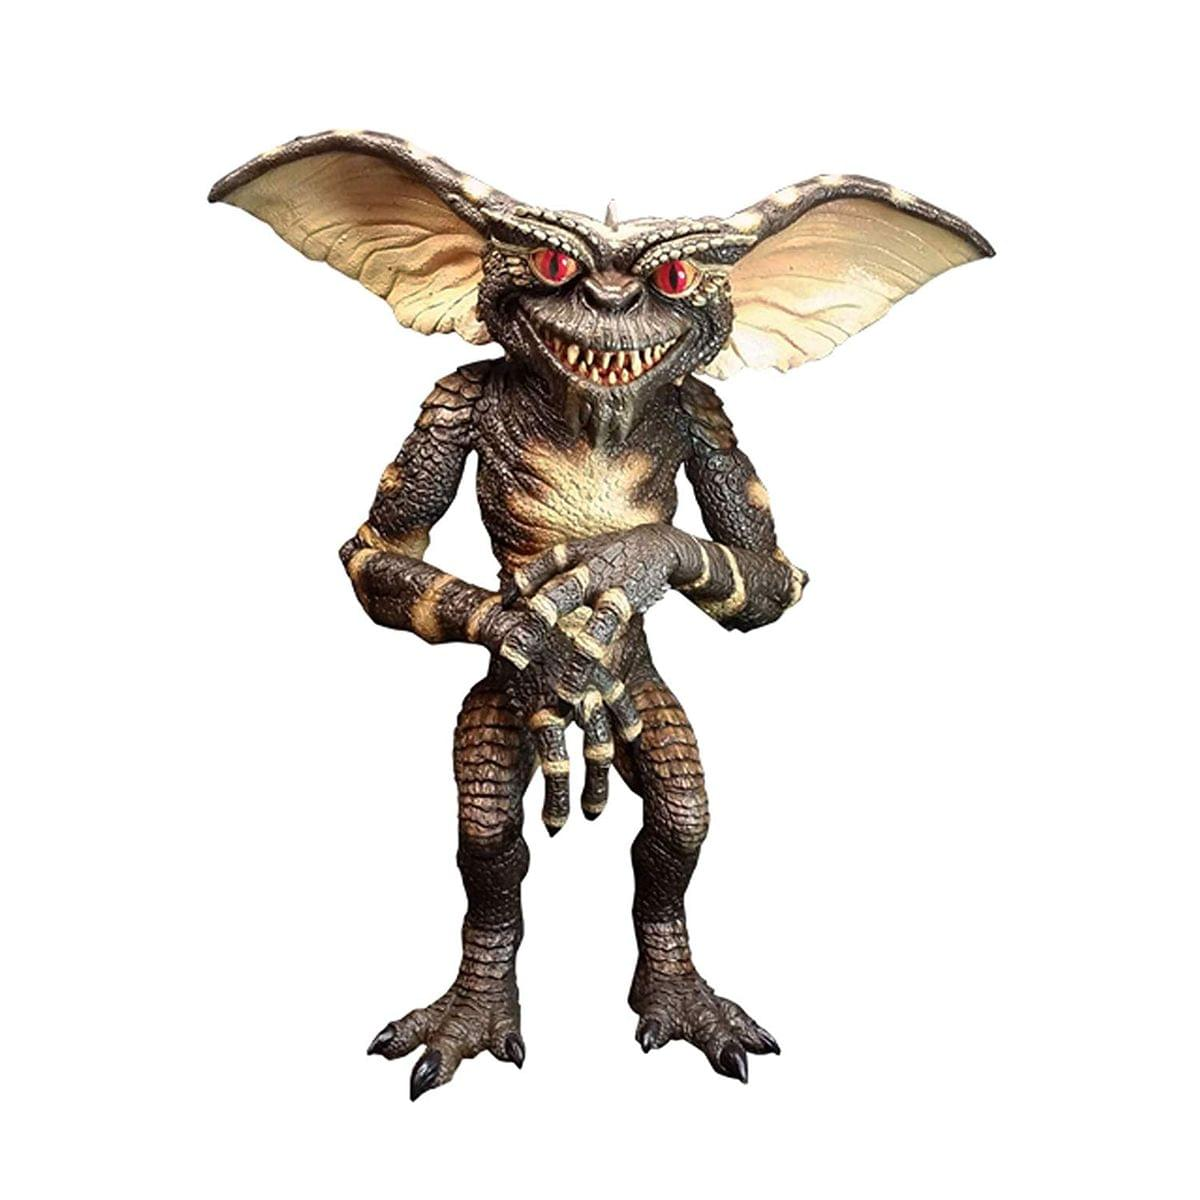 Gremlins Evil Gremlin Puppet by Trick or Treat Studios